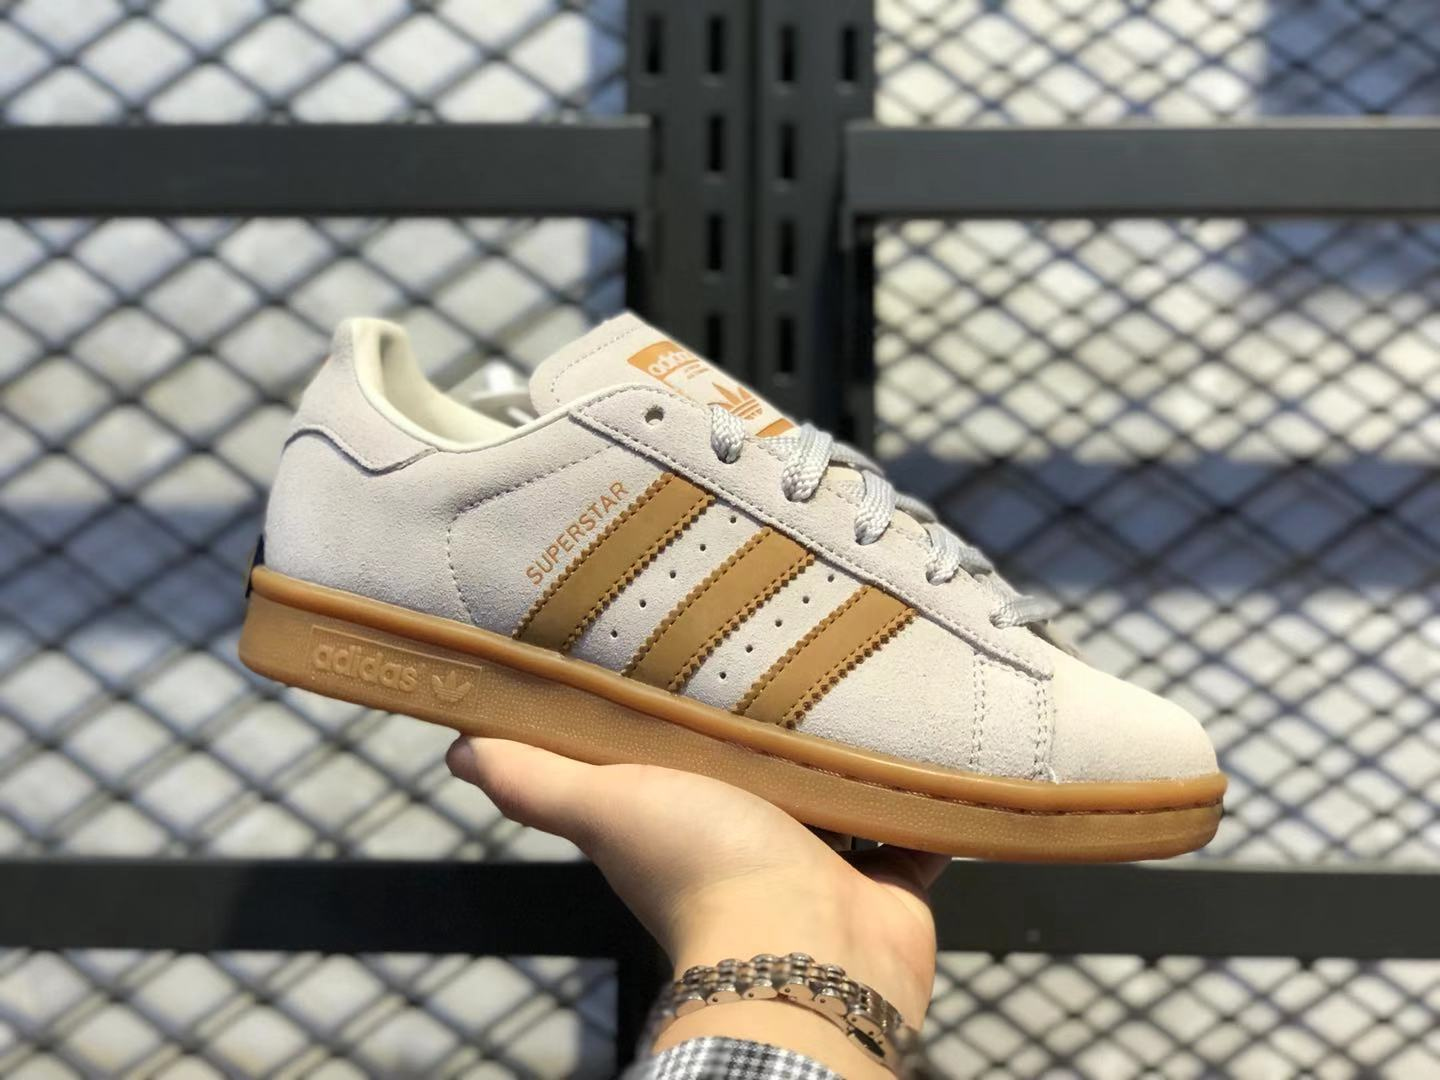 Adidas Superstar Low BD7438 Cream White/Brown Life Classic Shoes Cheap Sale